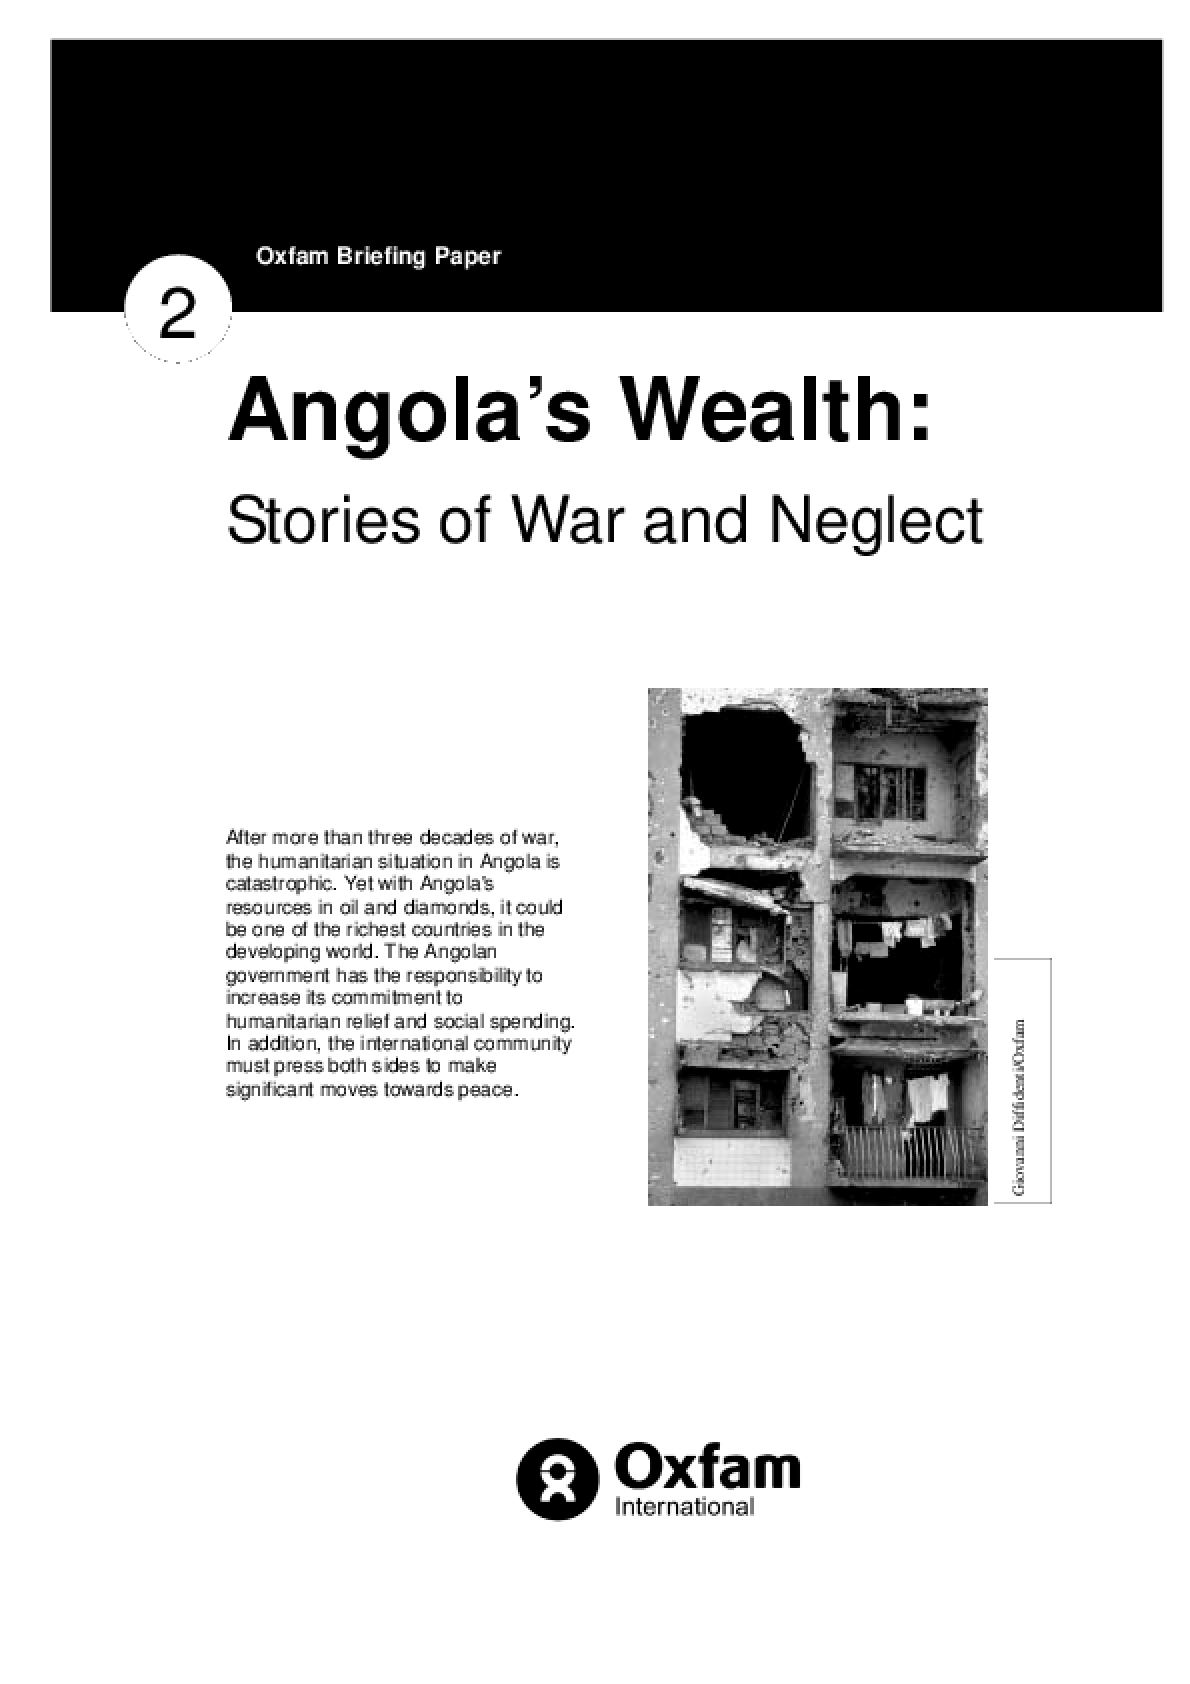 Angola's Wealth: Stories of war and neglect